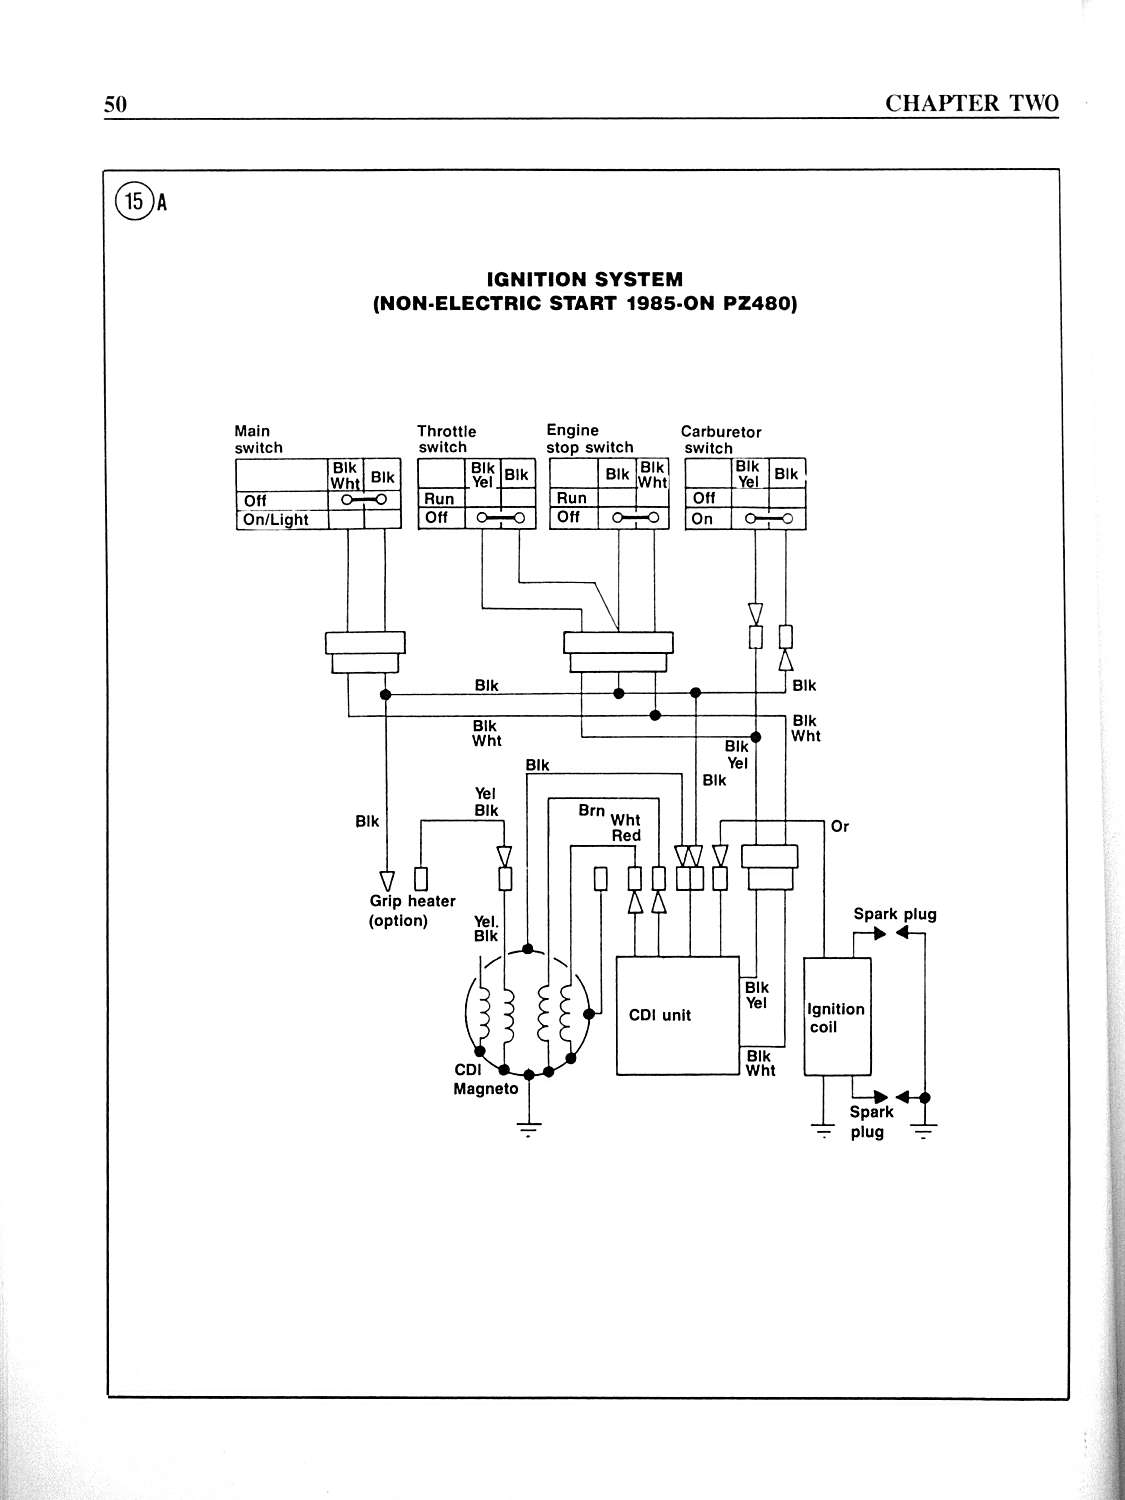 1993 yamaha phazer wiring diagram - wiring diagram ... yamaha banshee wiring harness diagram yamaha snowmobile wiring harness diagram #9